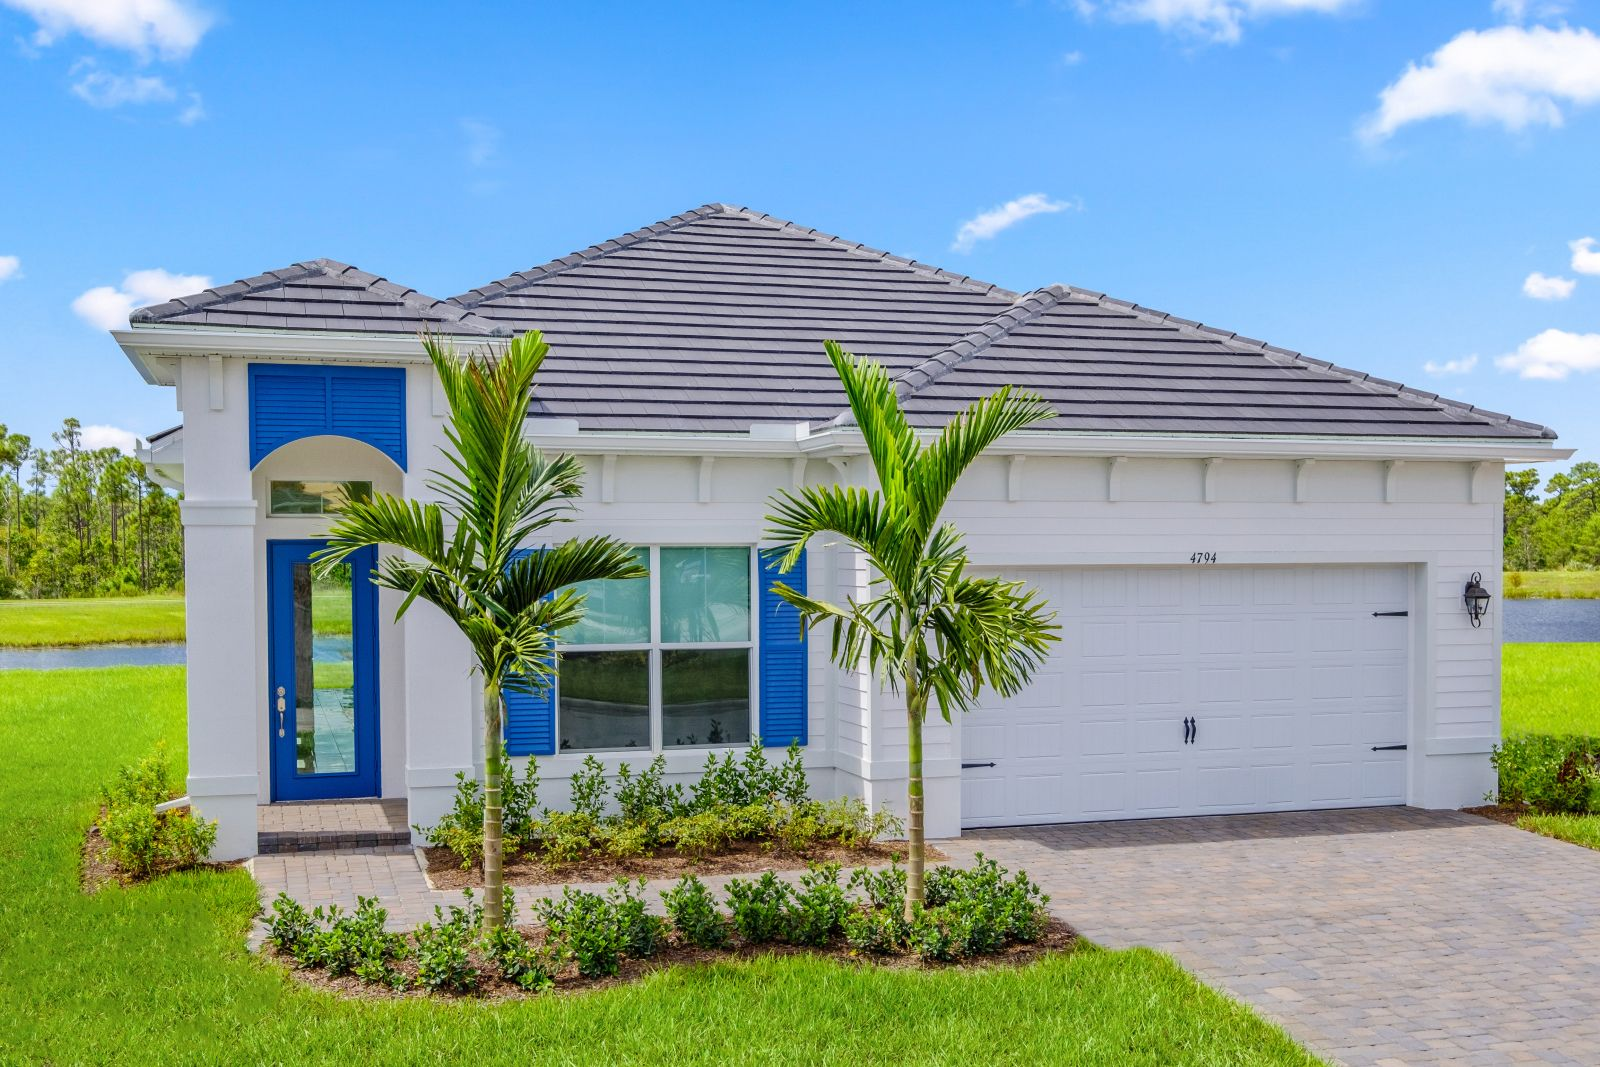 Come explore beautiful Banyan Bay in Stuart, FL By Appointment Only:Come explore beautiful Banyan Bay in Stuart, FL and fall in love with our captivating sunsets, natural preserve and stunning water views. By appointment only, come tour our gorgeous model homes!